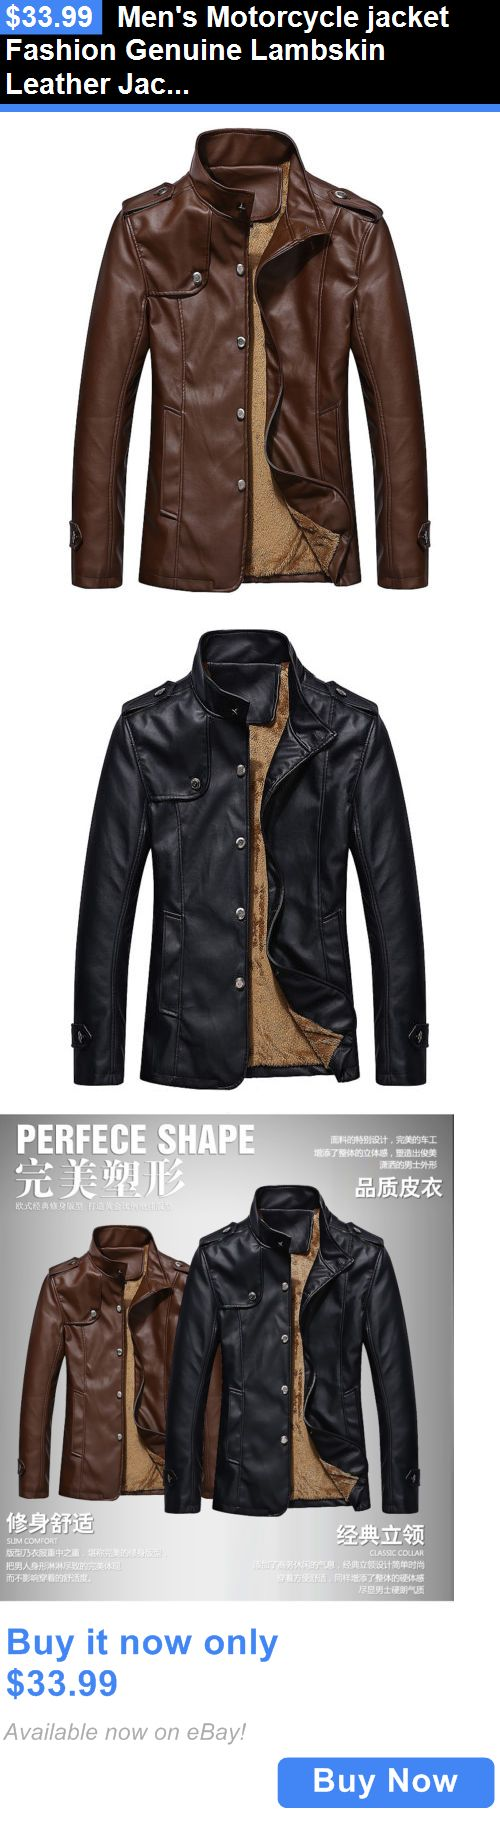 Men Coats And Jackets: Mens Motorcycle Jacket Fashion Genuine Lambskin Leather Jacket Slim Fit Biker BUY IT NOW ONLY: $33.99